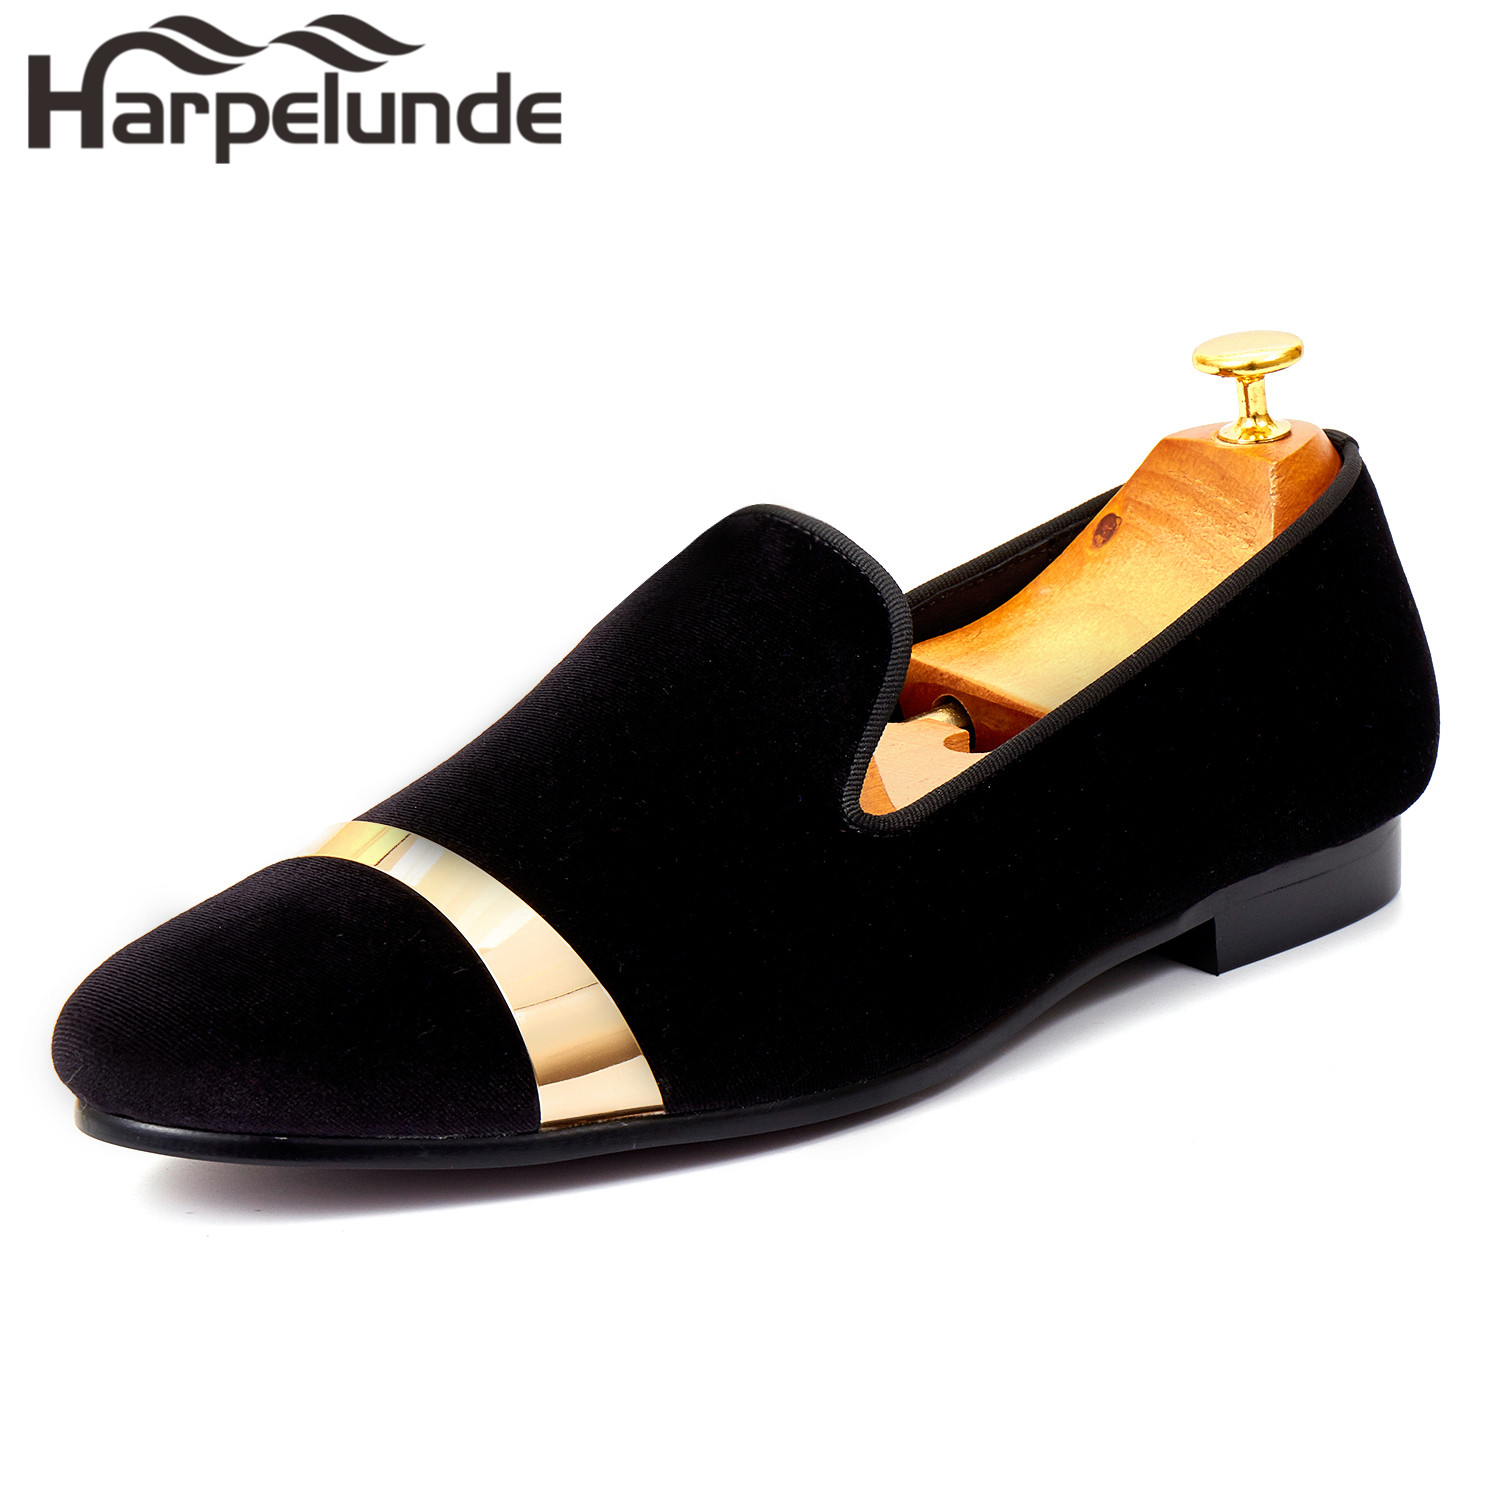 Harpelunde Slip On Men Shoes Dress Mocasines de terciopelo negro con placa de oro Tamaño 6-14